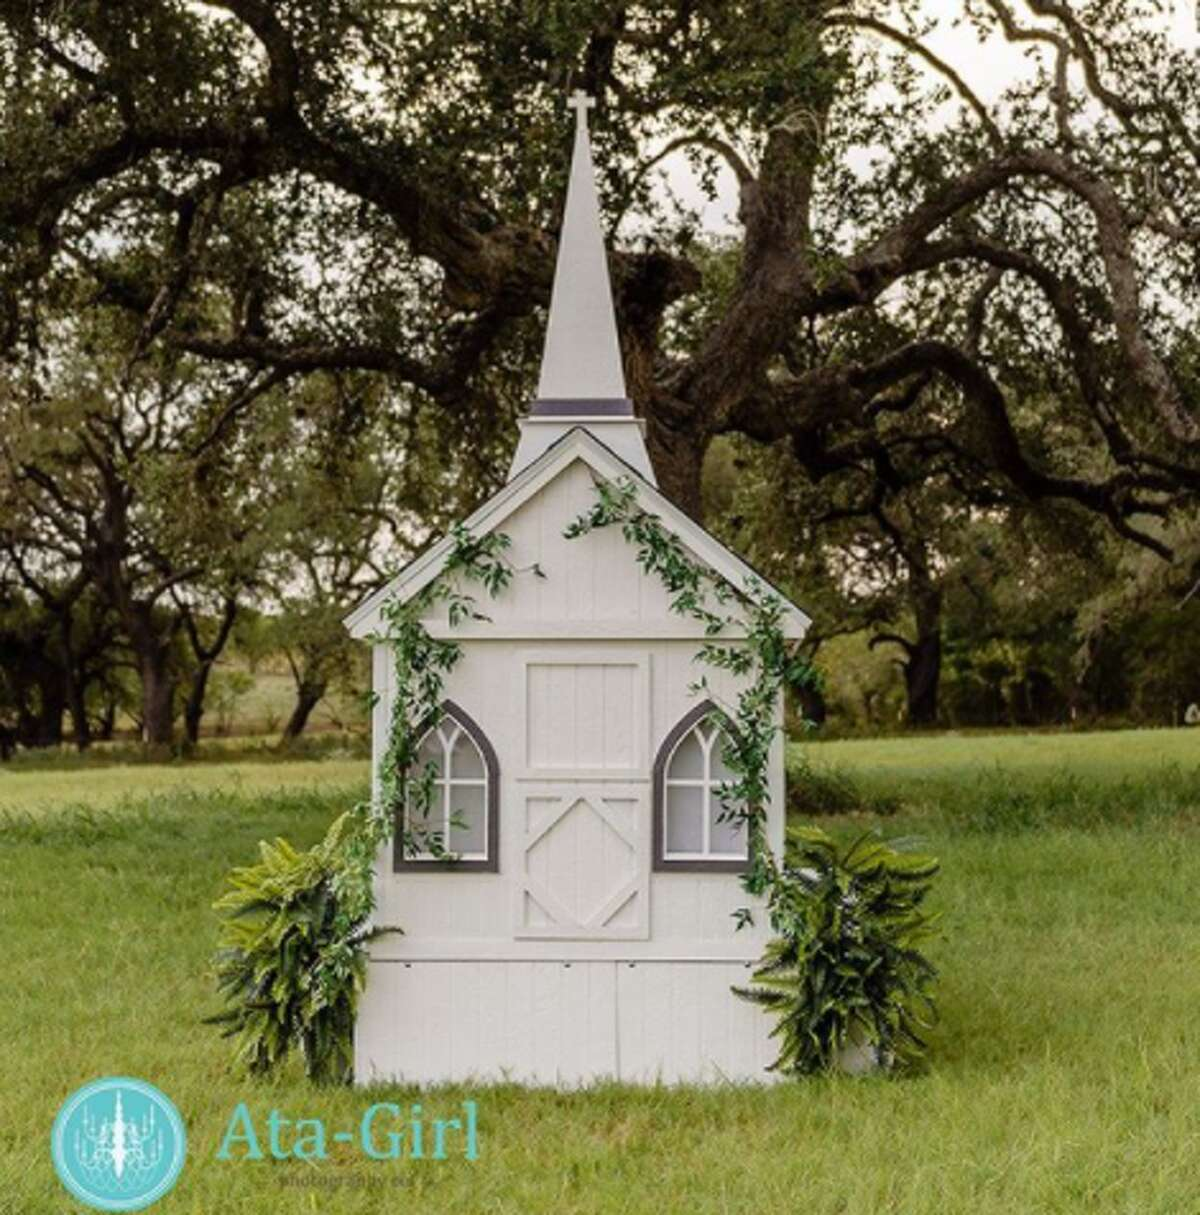 The little chapel is available for weddings in San Antonio or the surrounding Hill Country. Ravin Wolf says her husband built the chapel setup. It measures about 10- to 11-feet tall and about 6 1/2-feet wide.